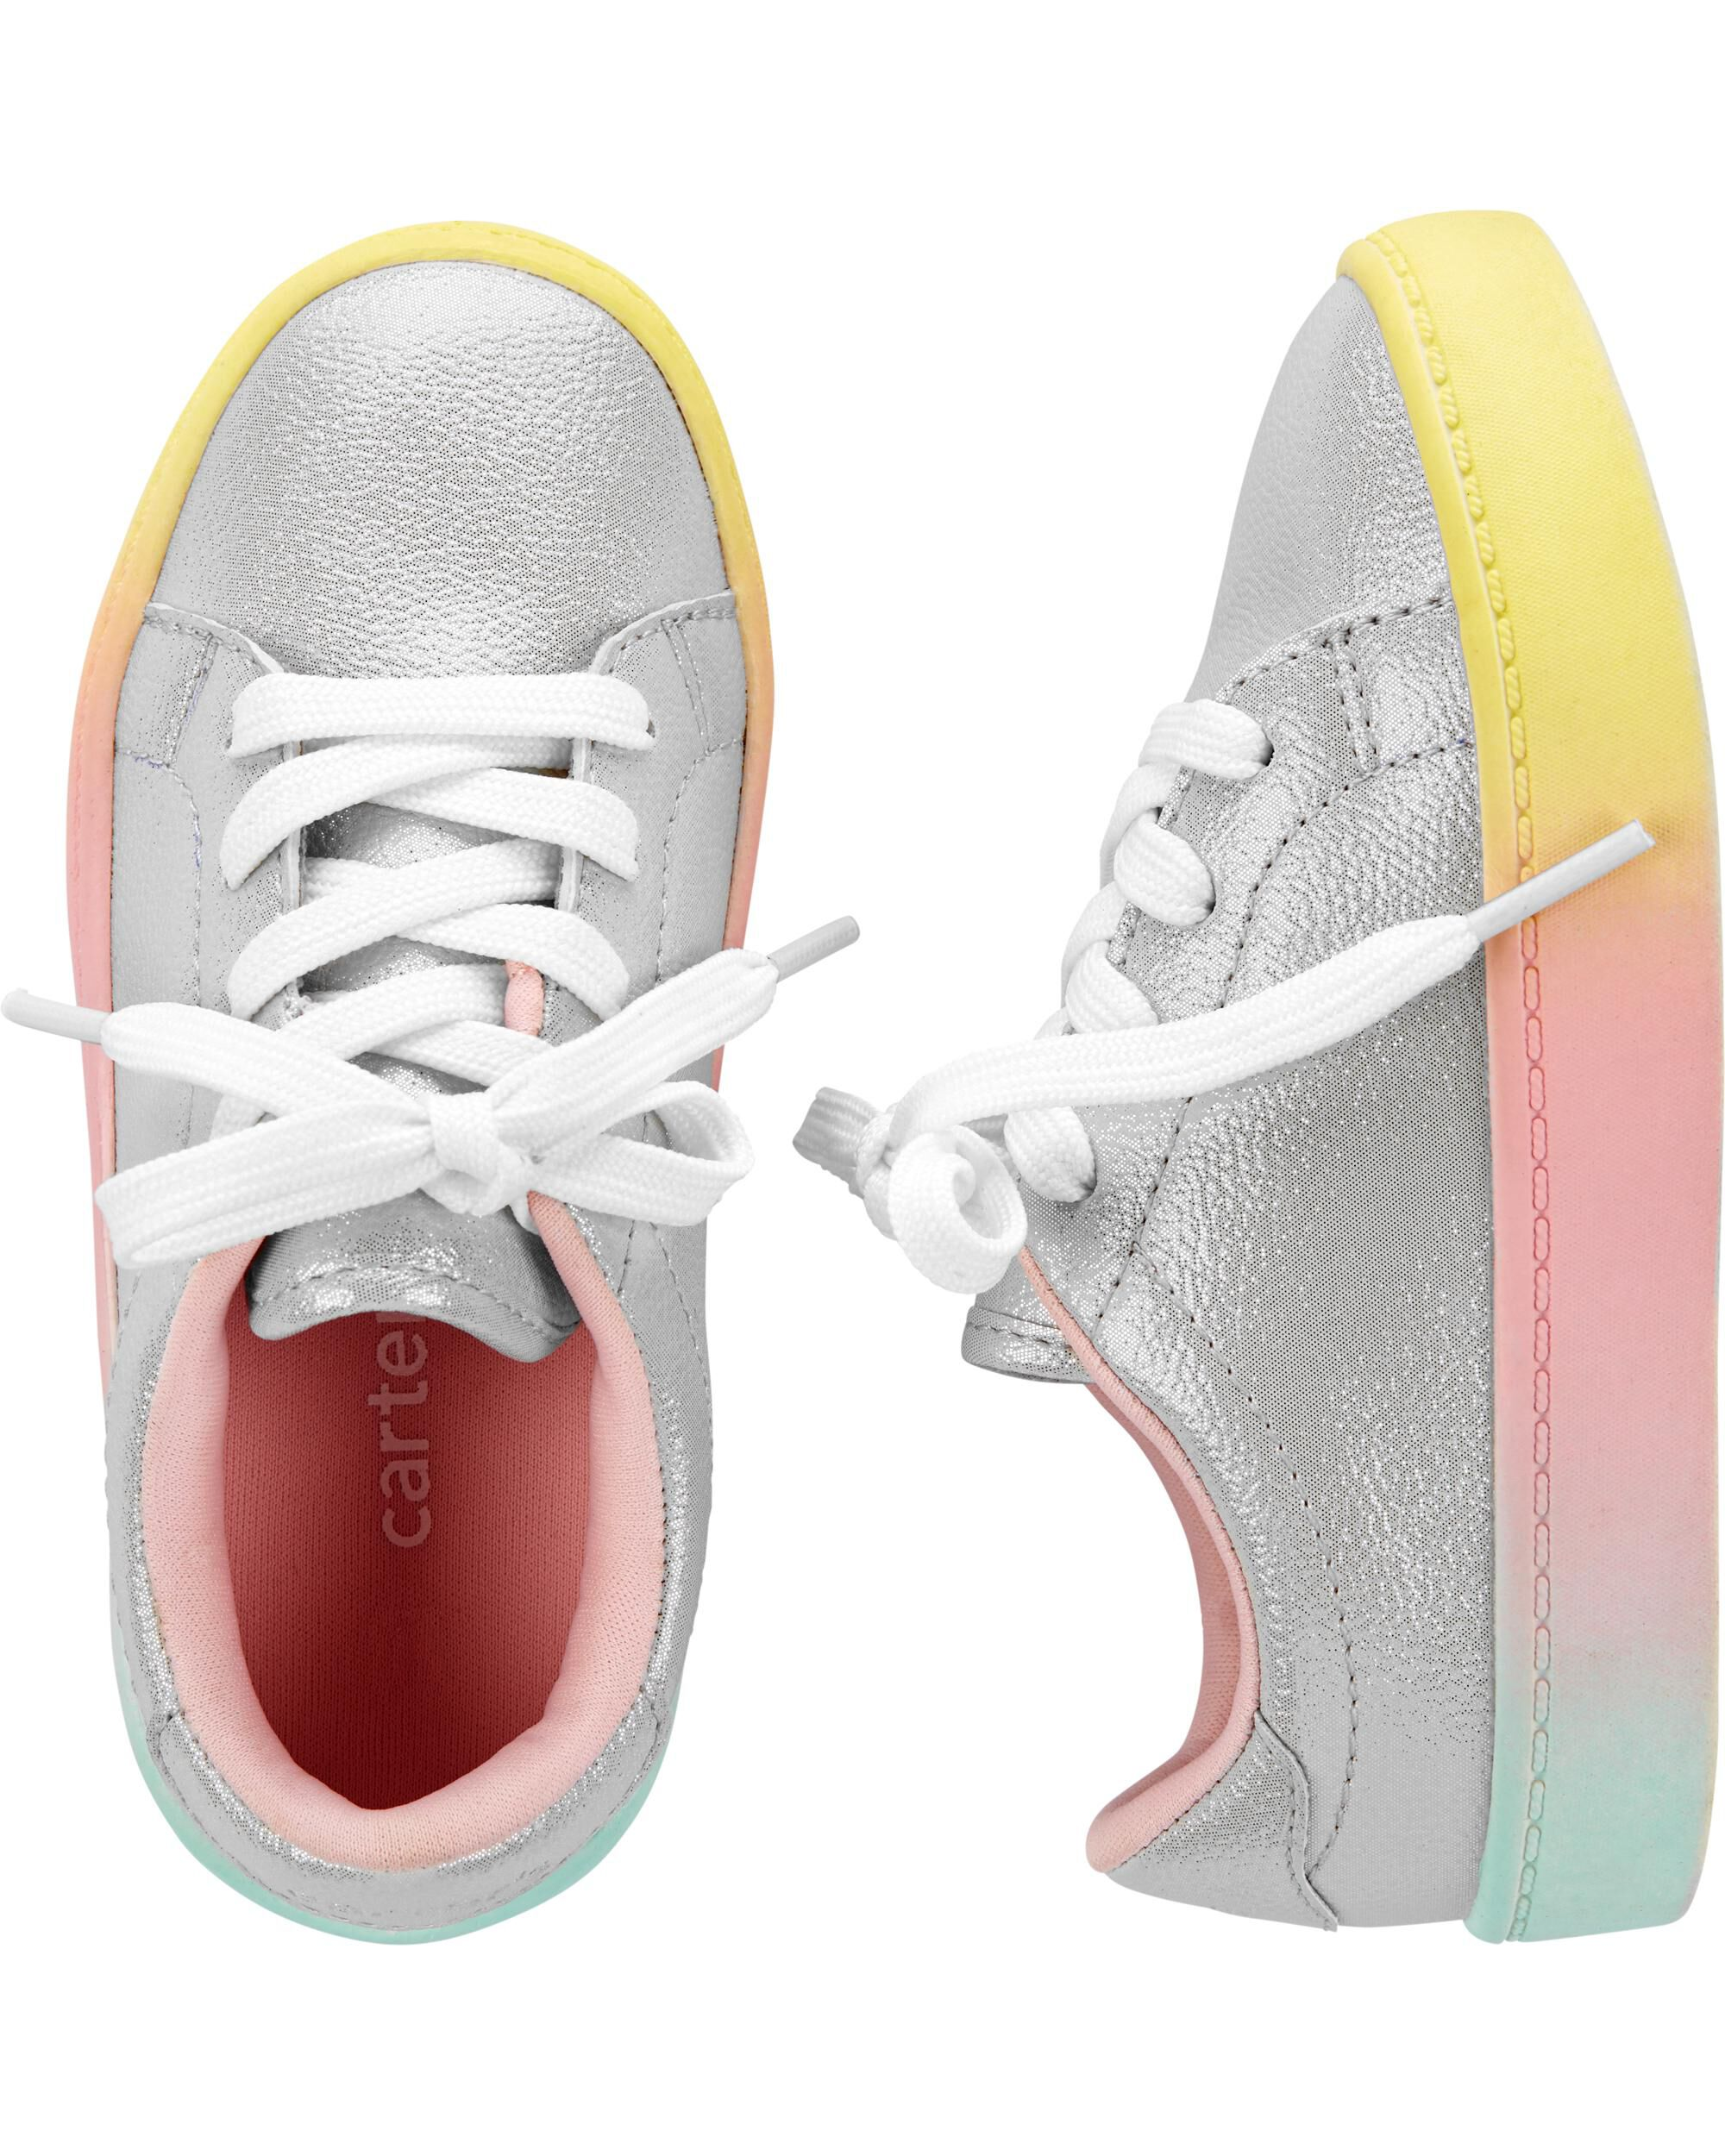 Carter's Rainbow Platform Casual Sneakers